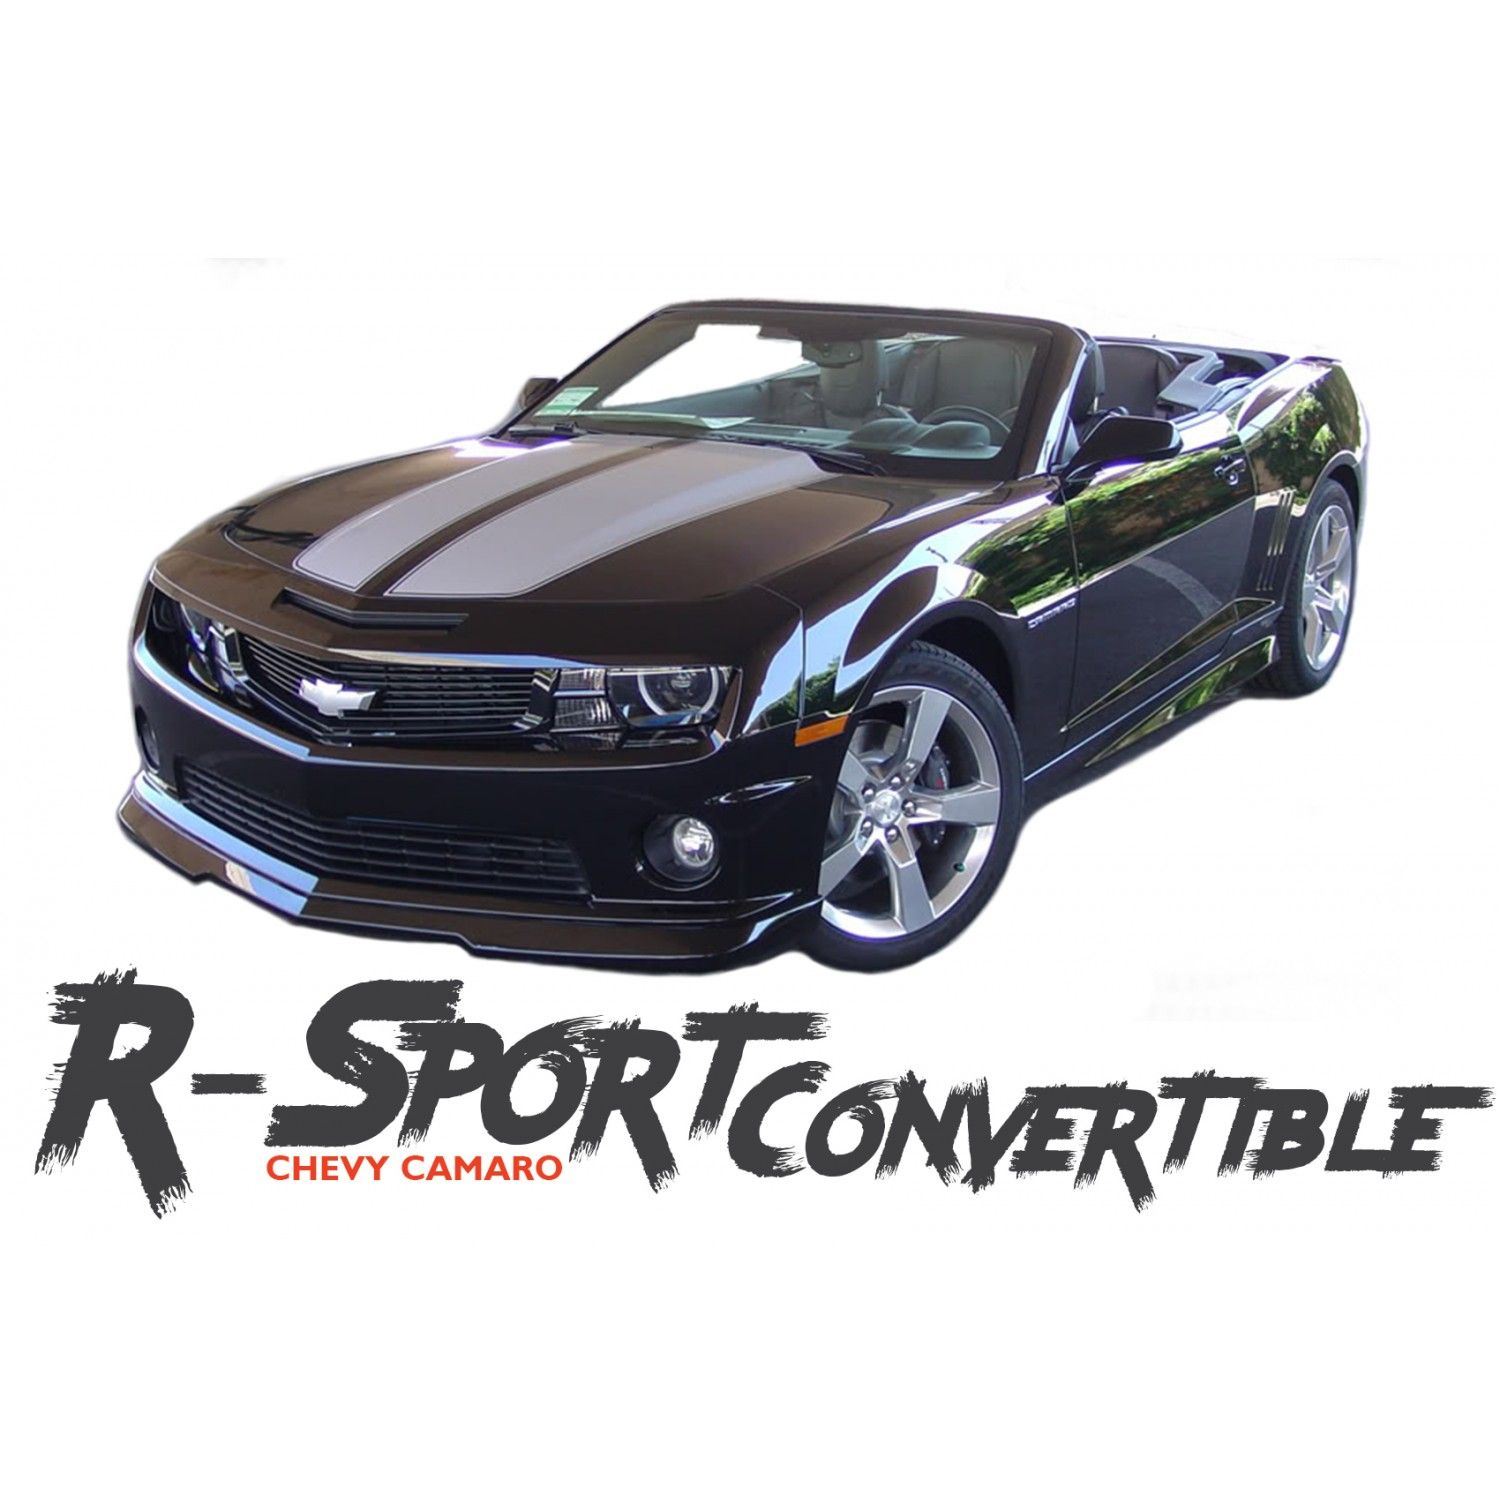 Chevy camaro race rally racing stripes vinyl graphics kit engineered specifically for the new camaro this kit will give you the complete indy st